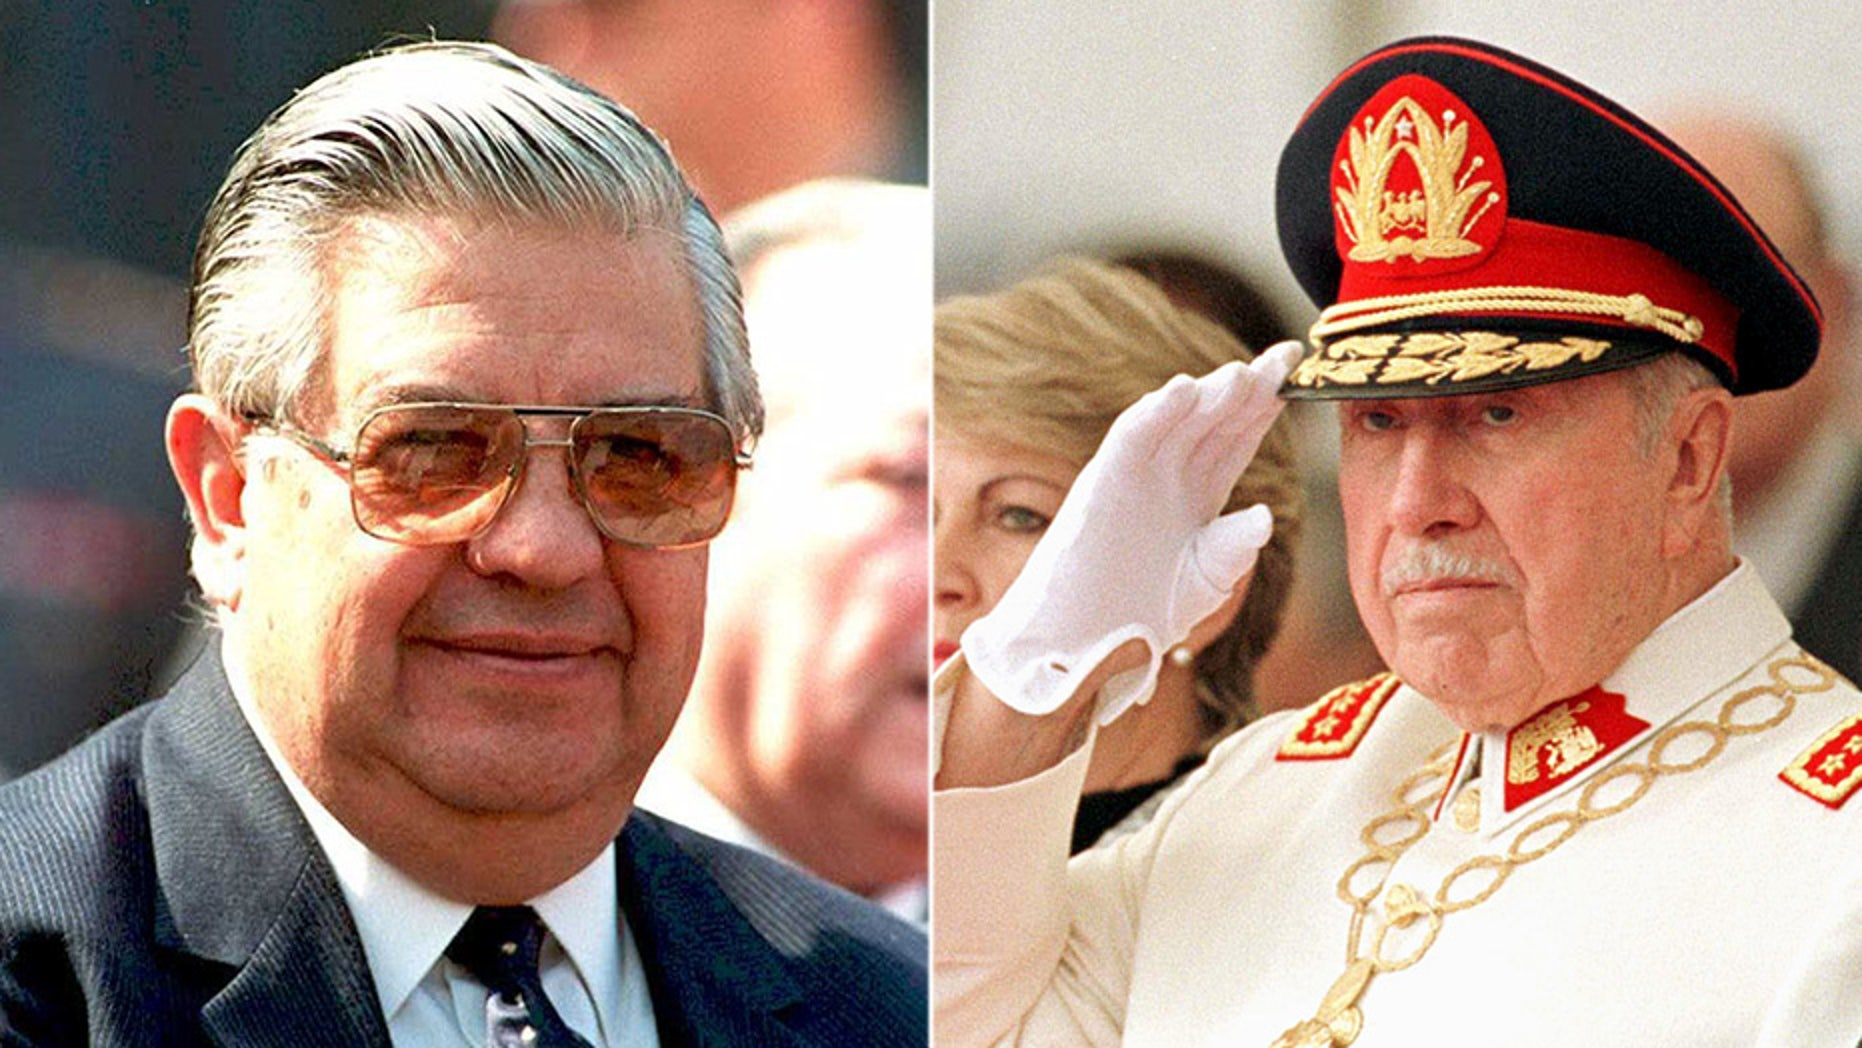 Adriana Rivas, 66, worked as a close aide between 1973 and 1976 to Manuel Contreras (left), who ran the National Intelligence Directorate under the Pinochet regime. The secret police run by Contreras was the main agency Pinochet (right) used to suppress his political opponents following his usurpation of power.